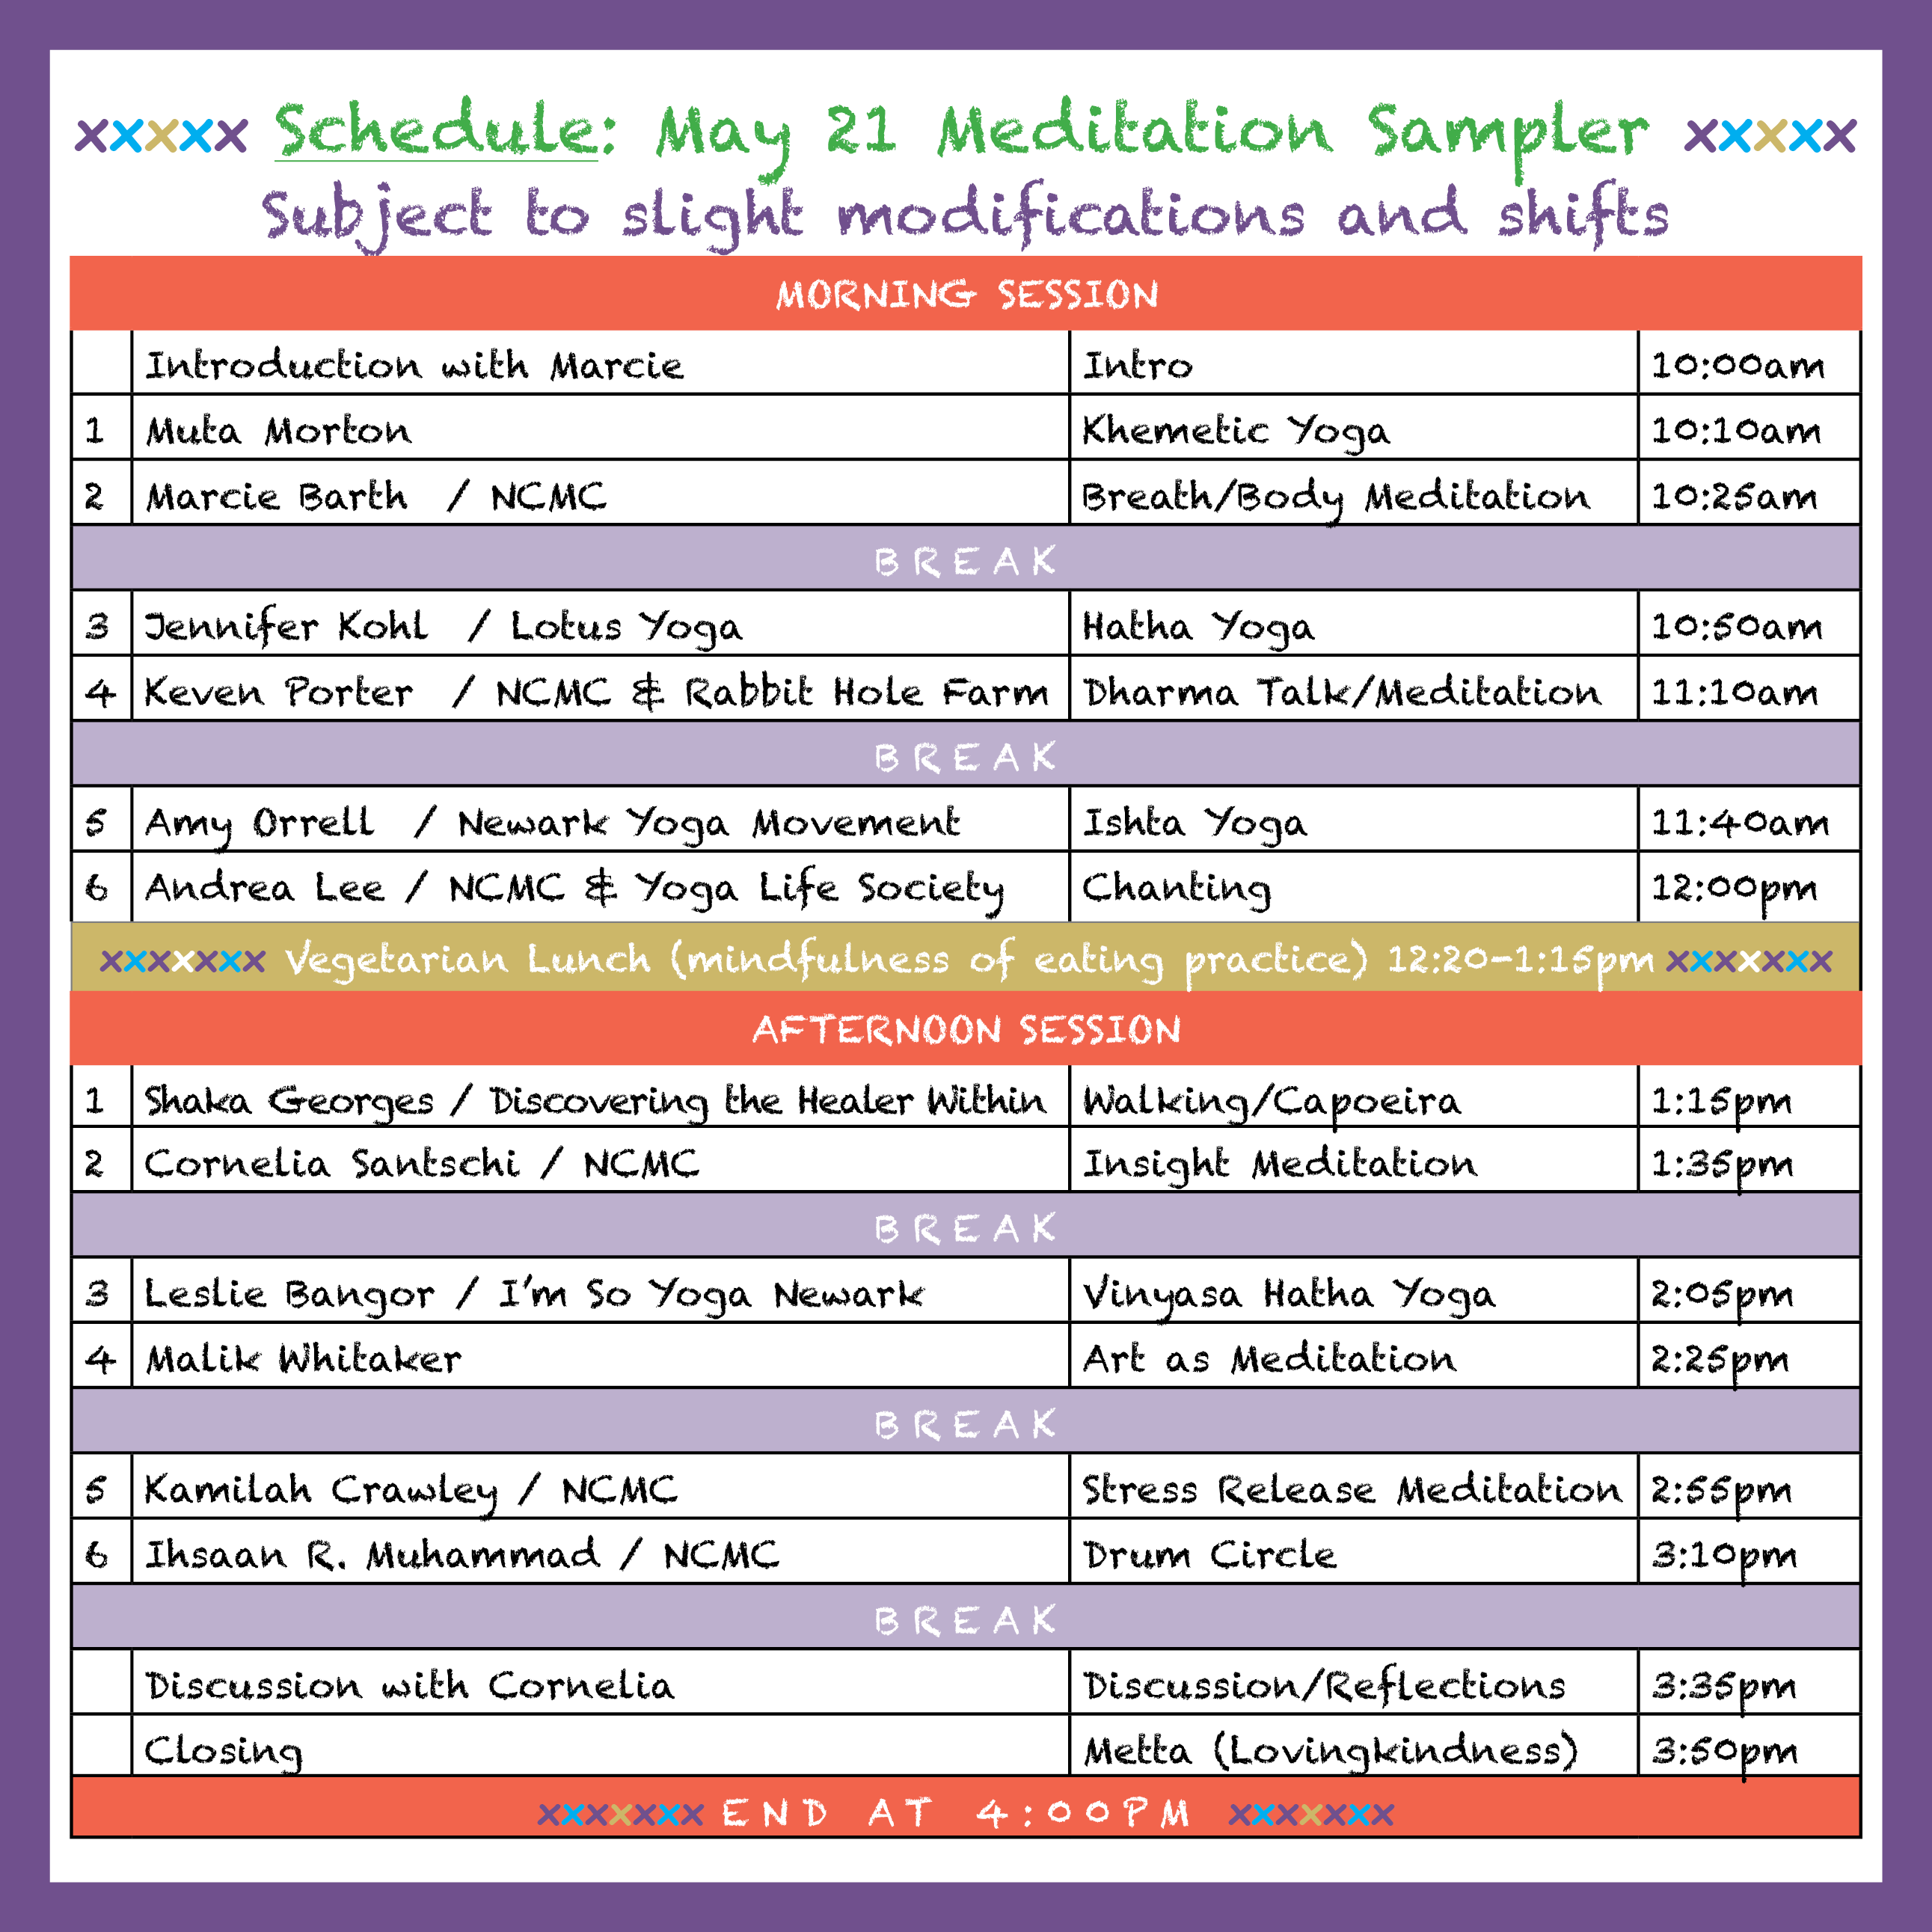 Schedule Graphic_Rev 2017-05-15.png